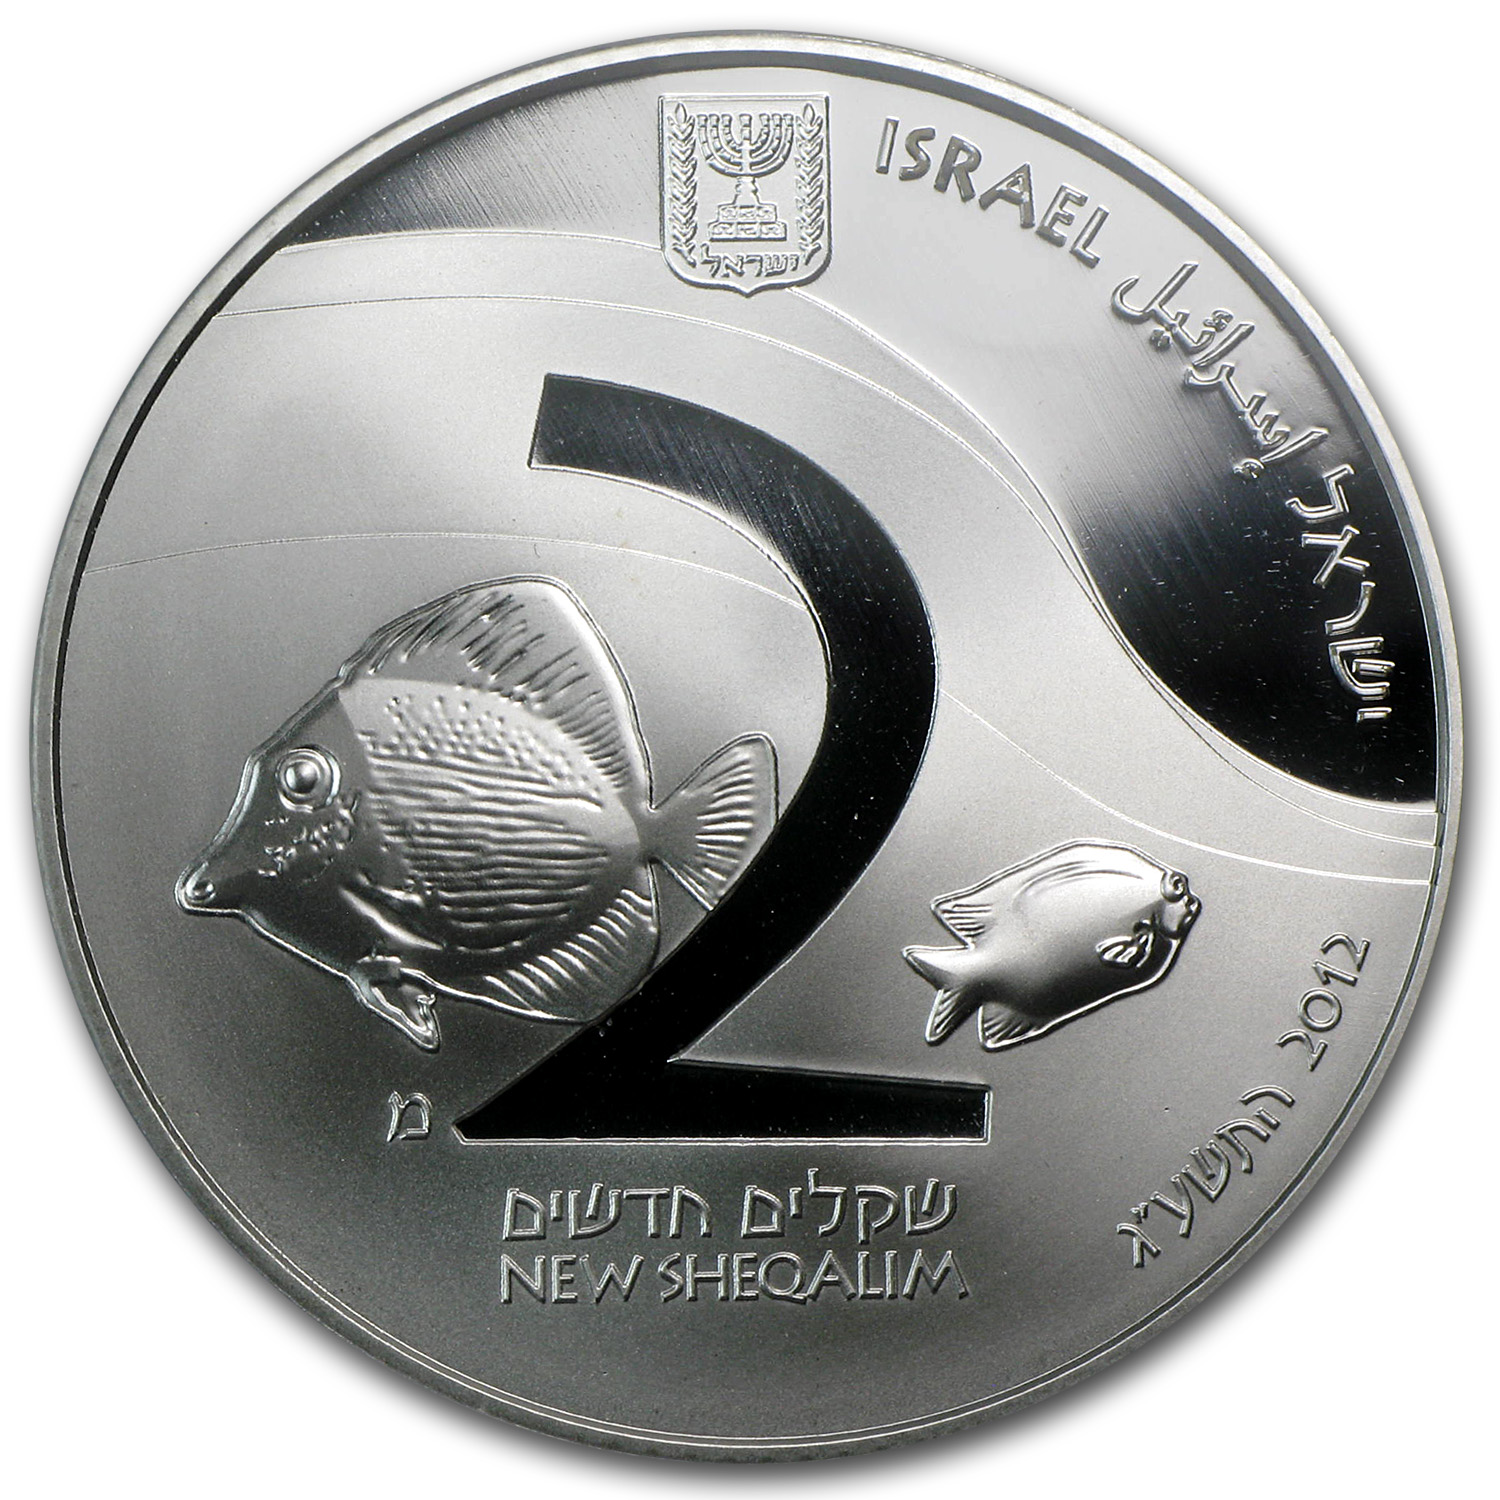 2012 Israel Coral Reef, Eilat Silver 2 NIS Coin PR-70 DCAM PCGS